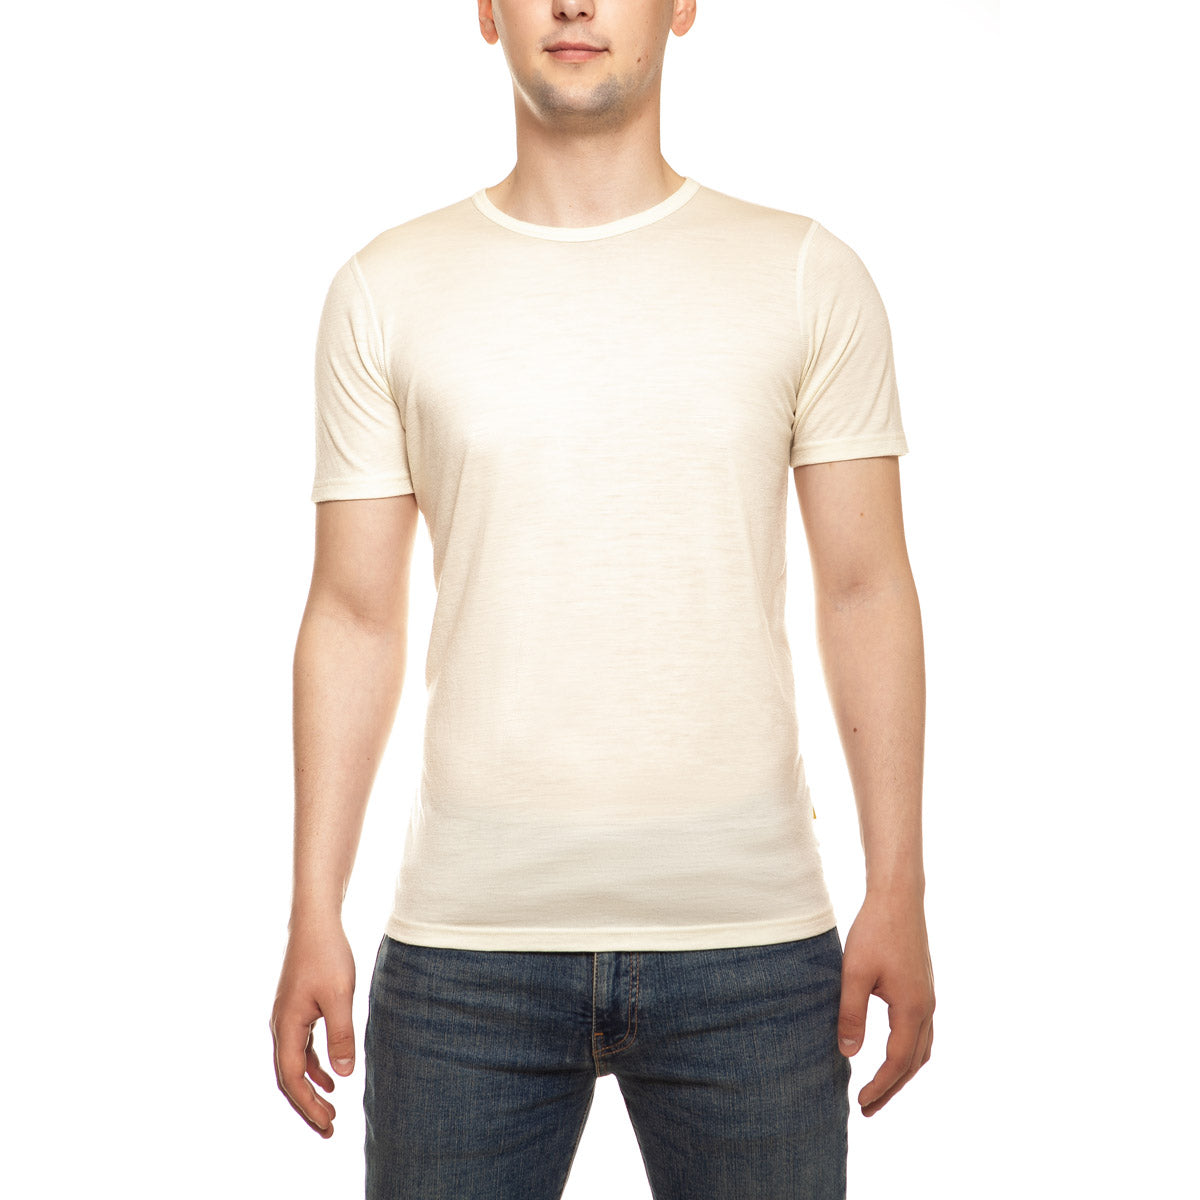 menique Men's Merino 160 Short Sleeve Crew Natural Color